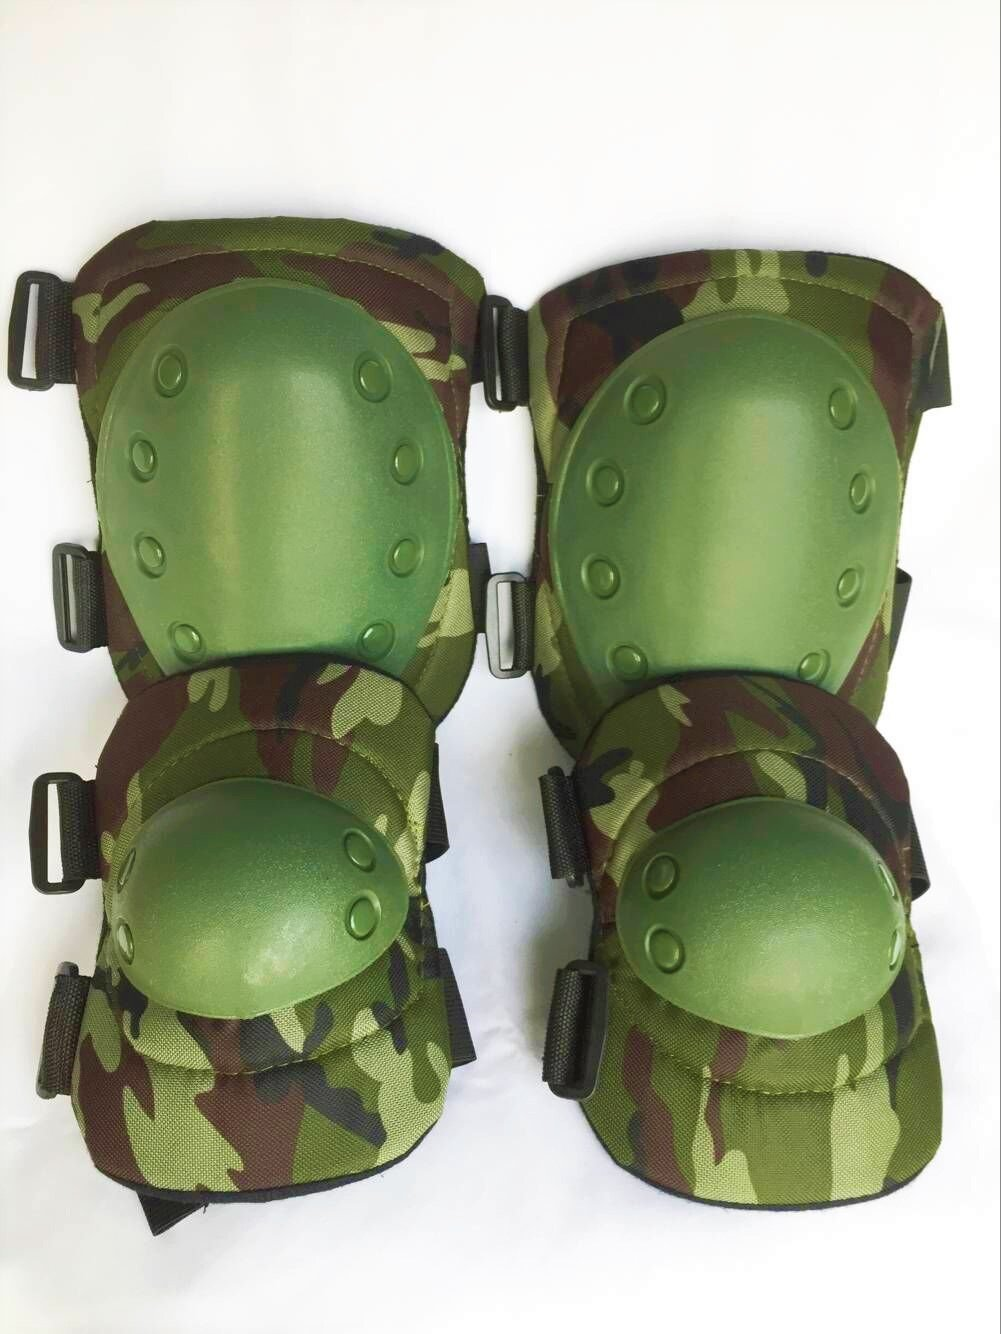 Bargain Crusader Military Tactical Knee Pad Elbow Pad Set Airsoft Knee Elbow Protective Pads Combat Paintball Skate Outdoor Sports Safety Guard Gear (Woodland Camouflage) by Bargain Crusader